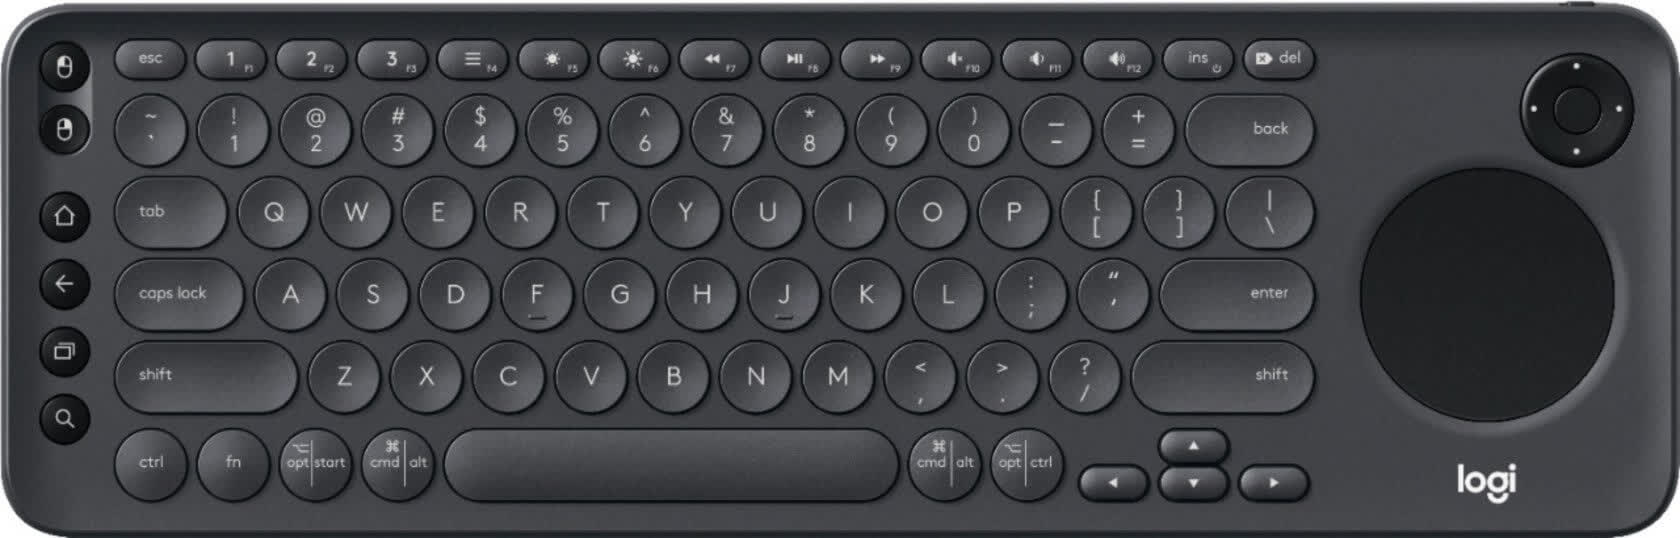 Logitech K600 TV Keyboard with Touchpad